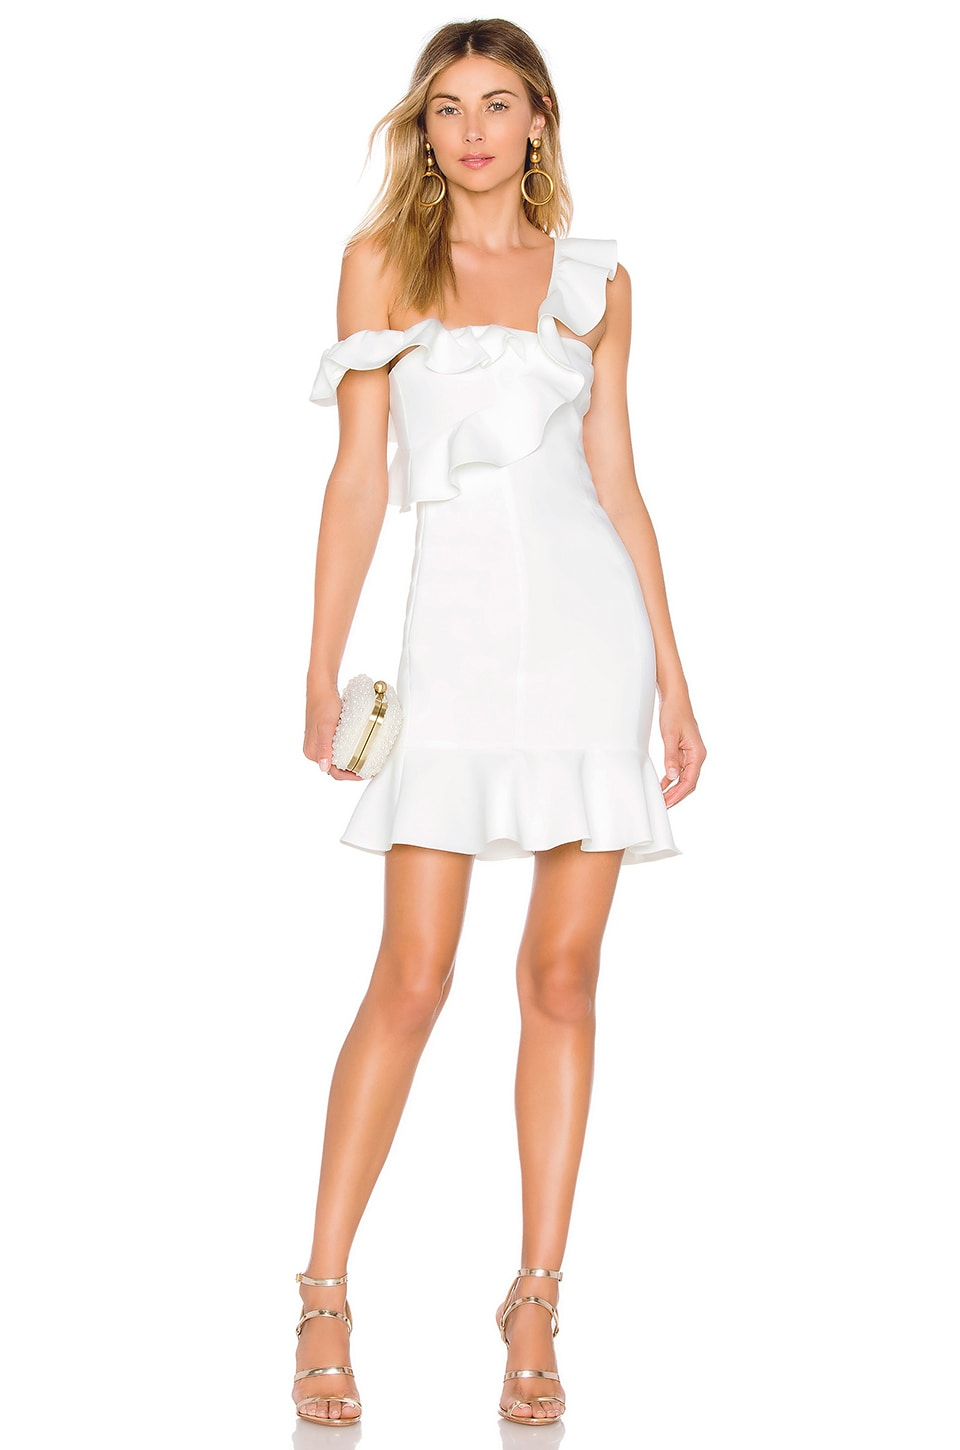 LIKELY Norvina Dress in White